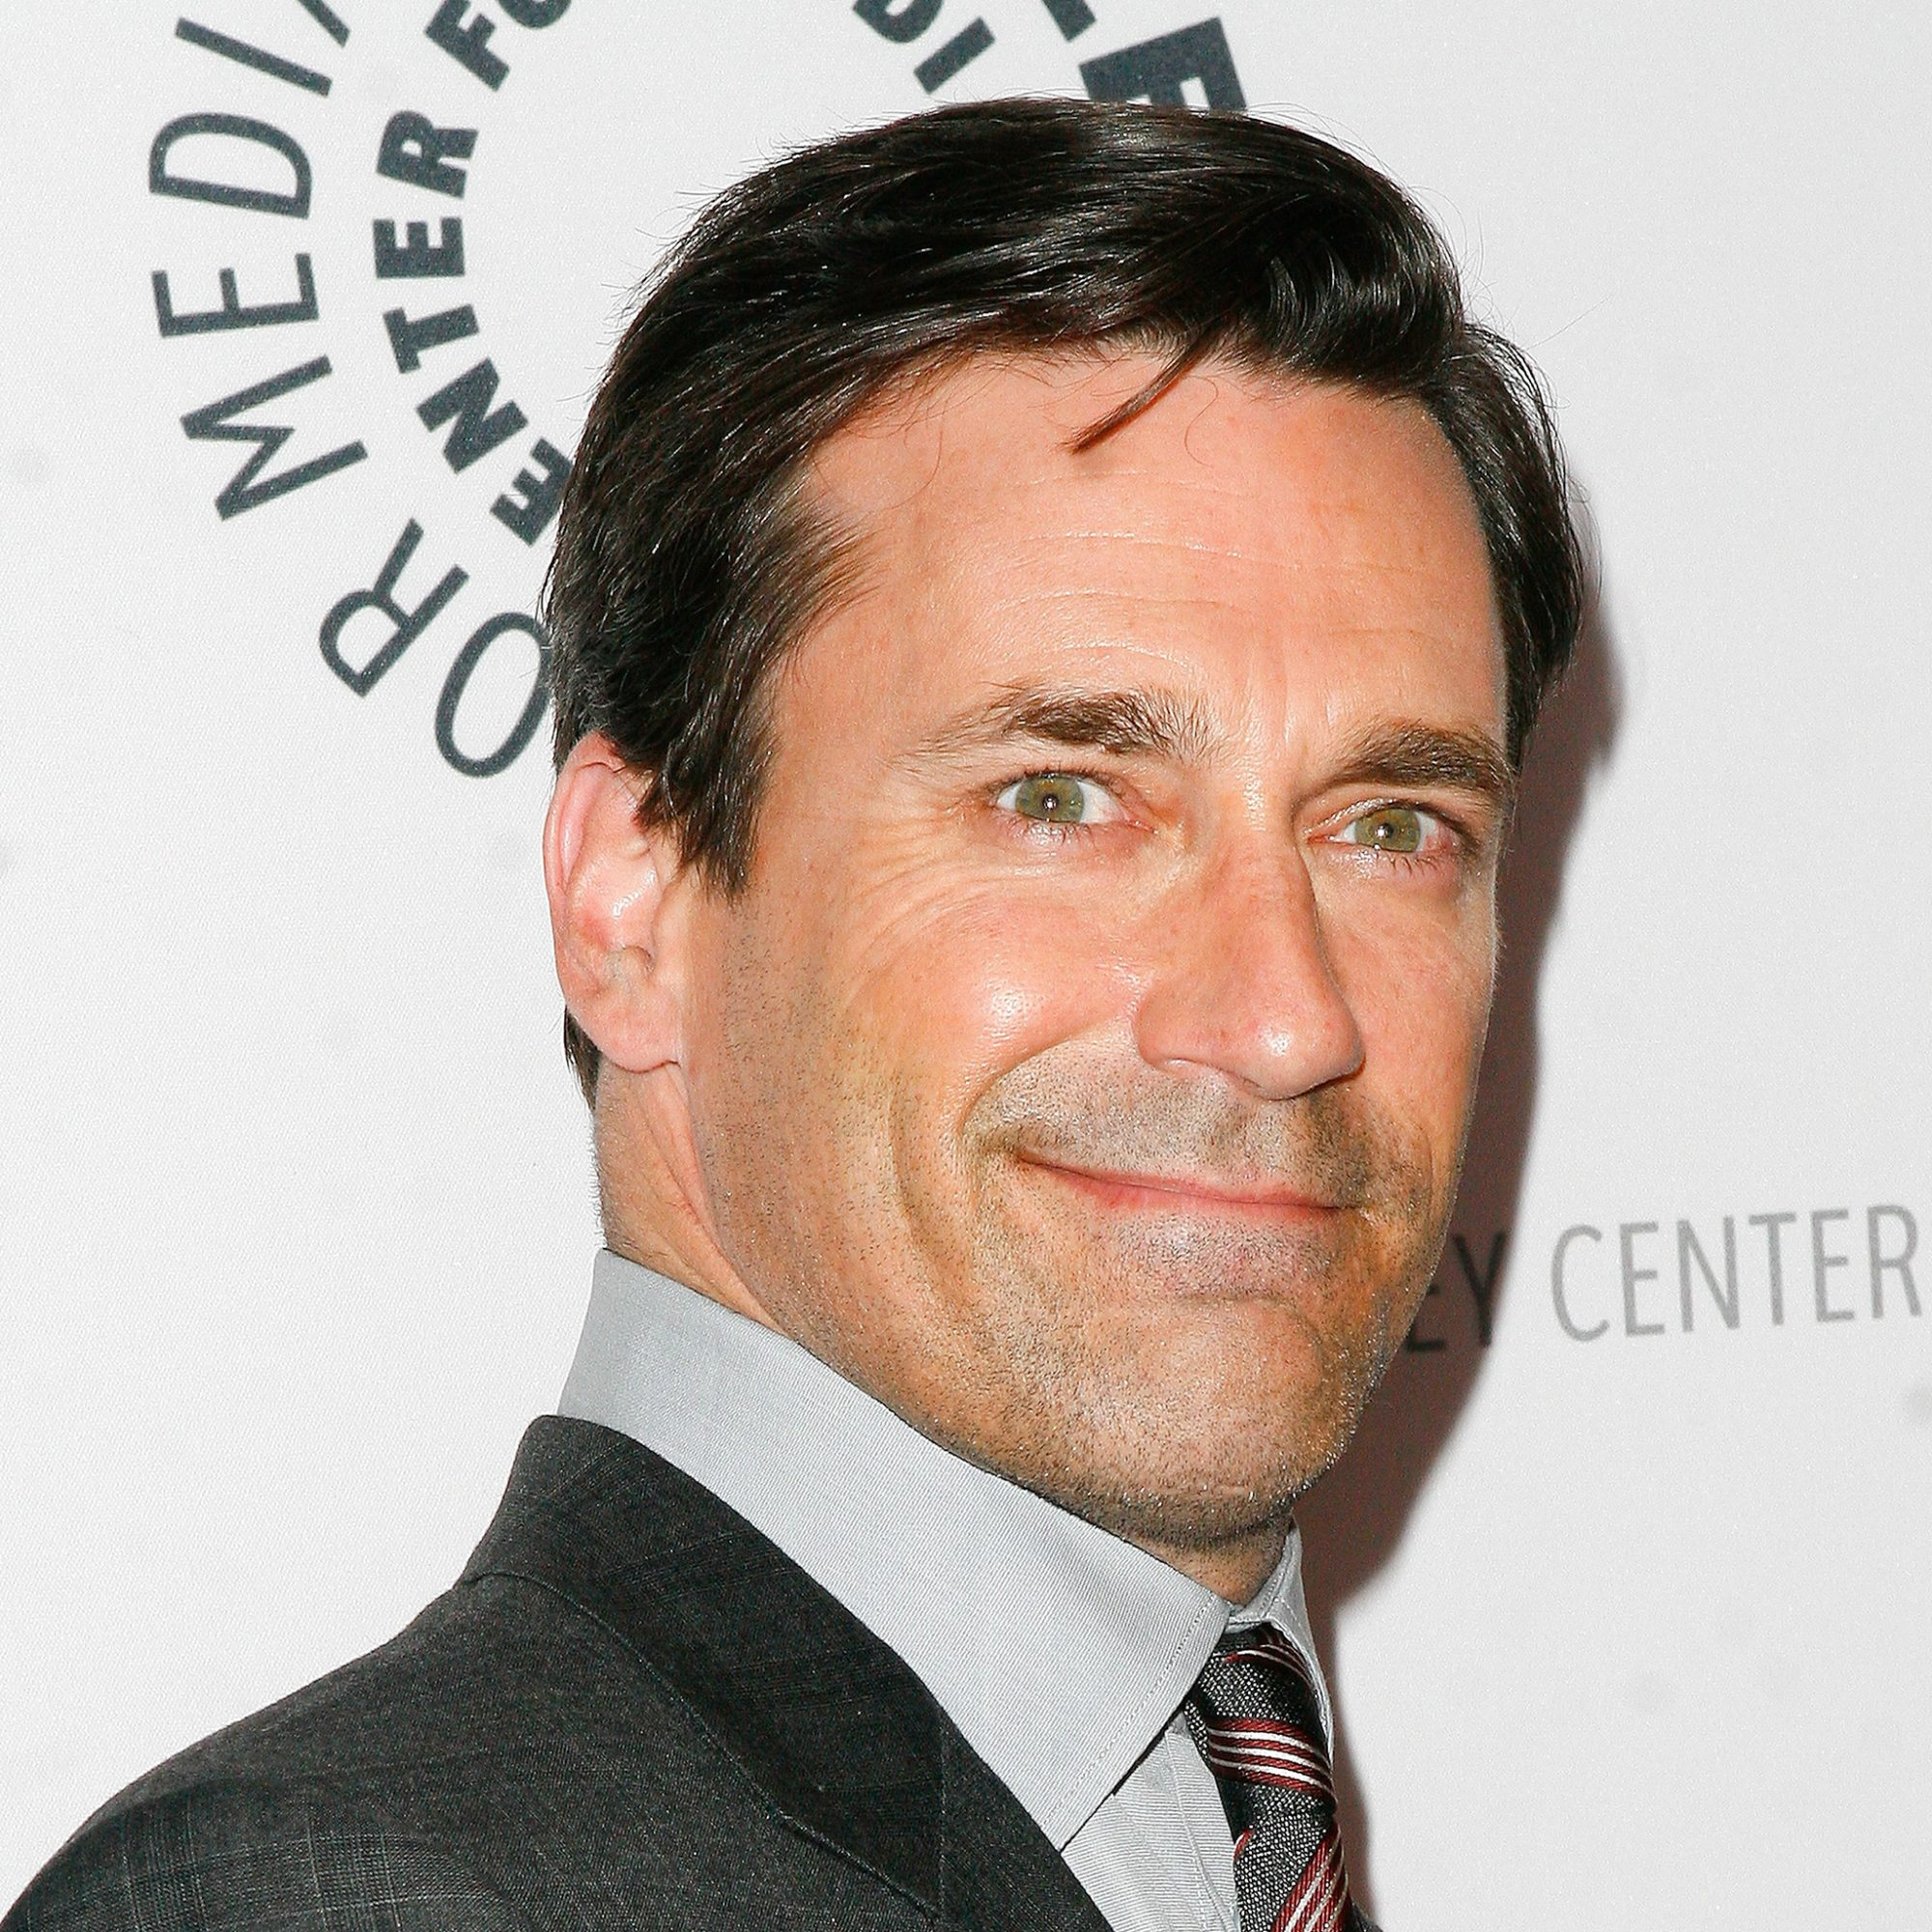 FWX THE GOOD AND THE BAD OF MAD MEN JON HAMM